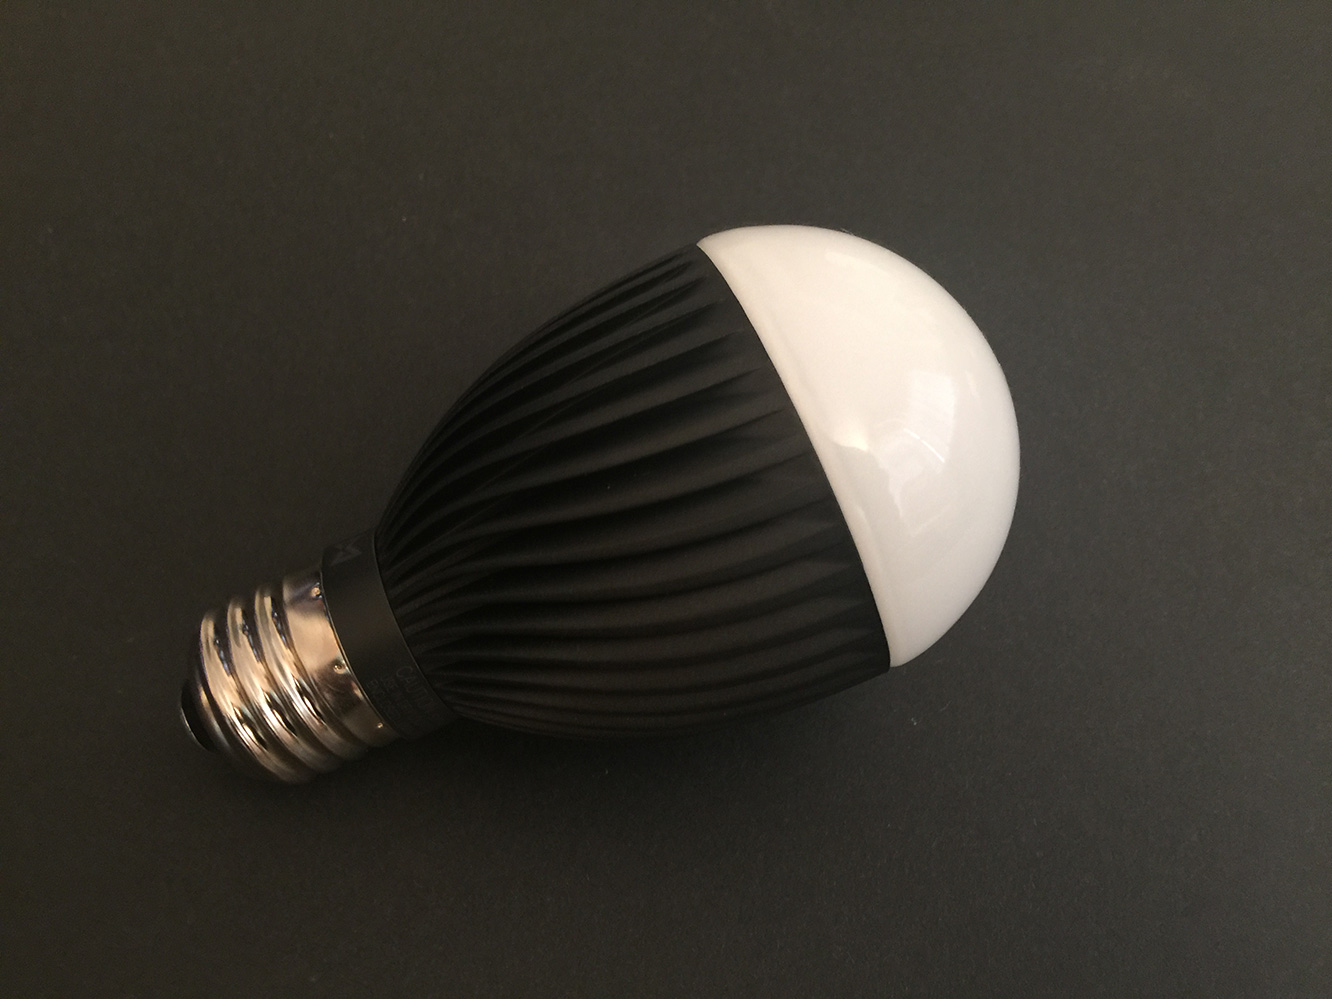 Review: Misfit Bolt Wirelessly Connected Smart Bulb